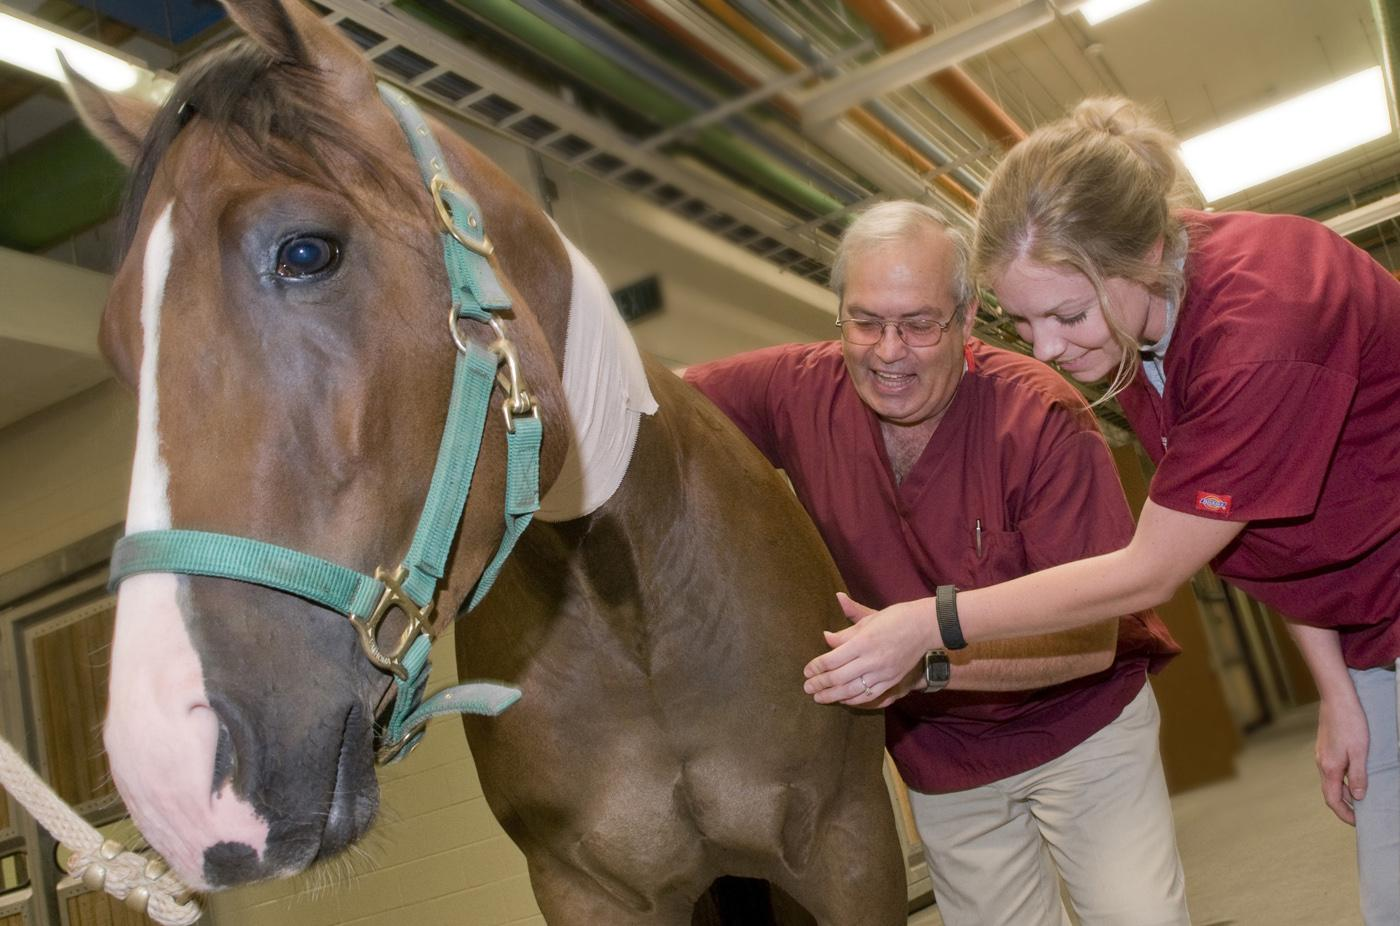 Dr. Bob Linford of Mississippi State University's College of Veterinary Medicine instructs veterinary student Angie Skyles in equine joint palpation, or feeling with the hand, techniques. (Photo by Tom Thompson)